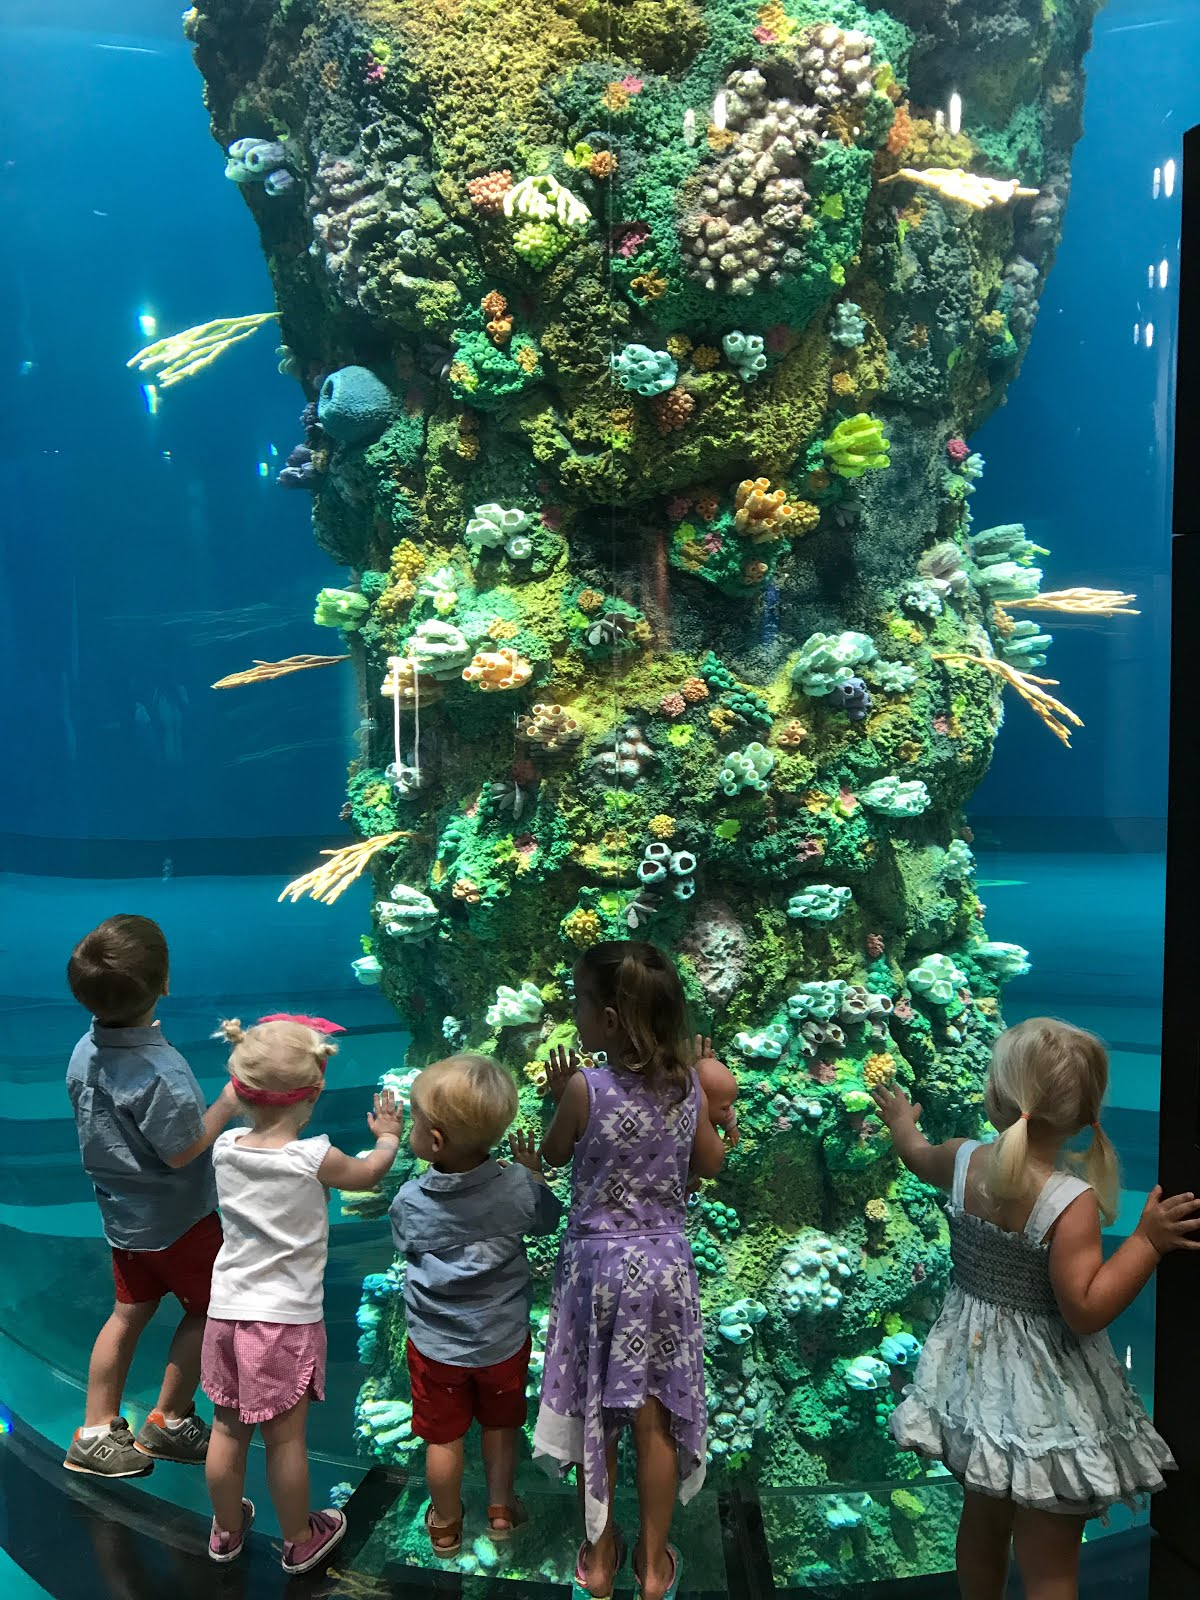 A New Aquarium That Runs From Top To Bottom! The Kids Noticed This First!